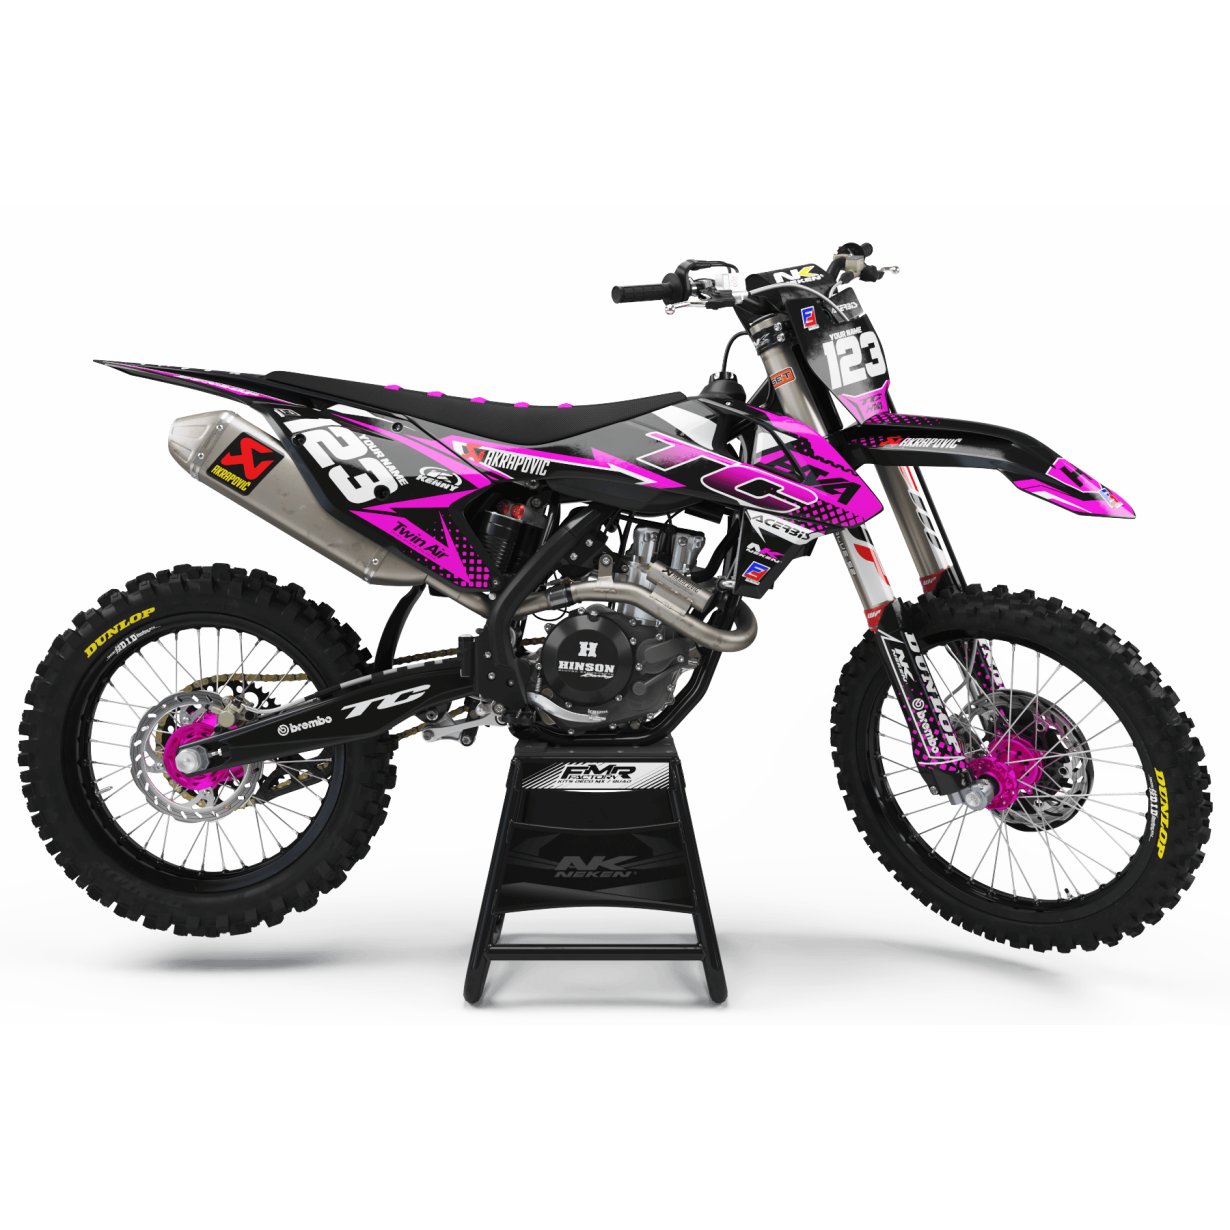 Kit déco Perso FACTORY Husqvarna ENERGY MA33I3 rose